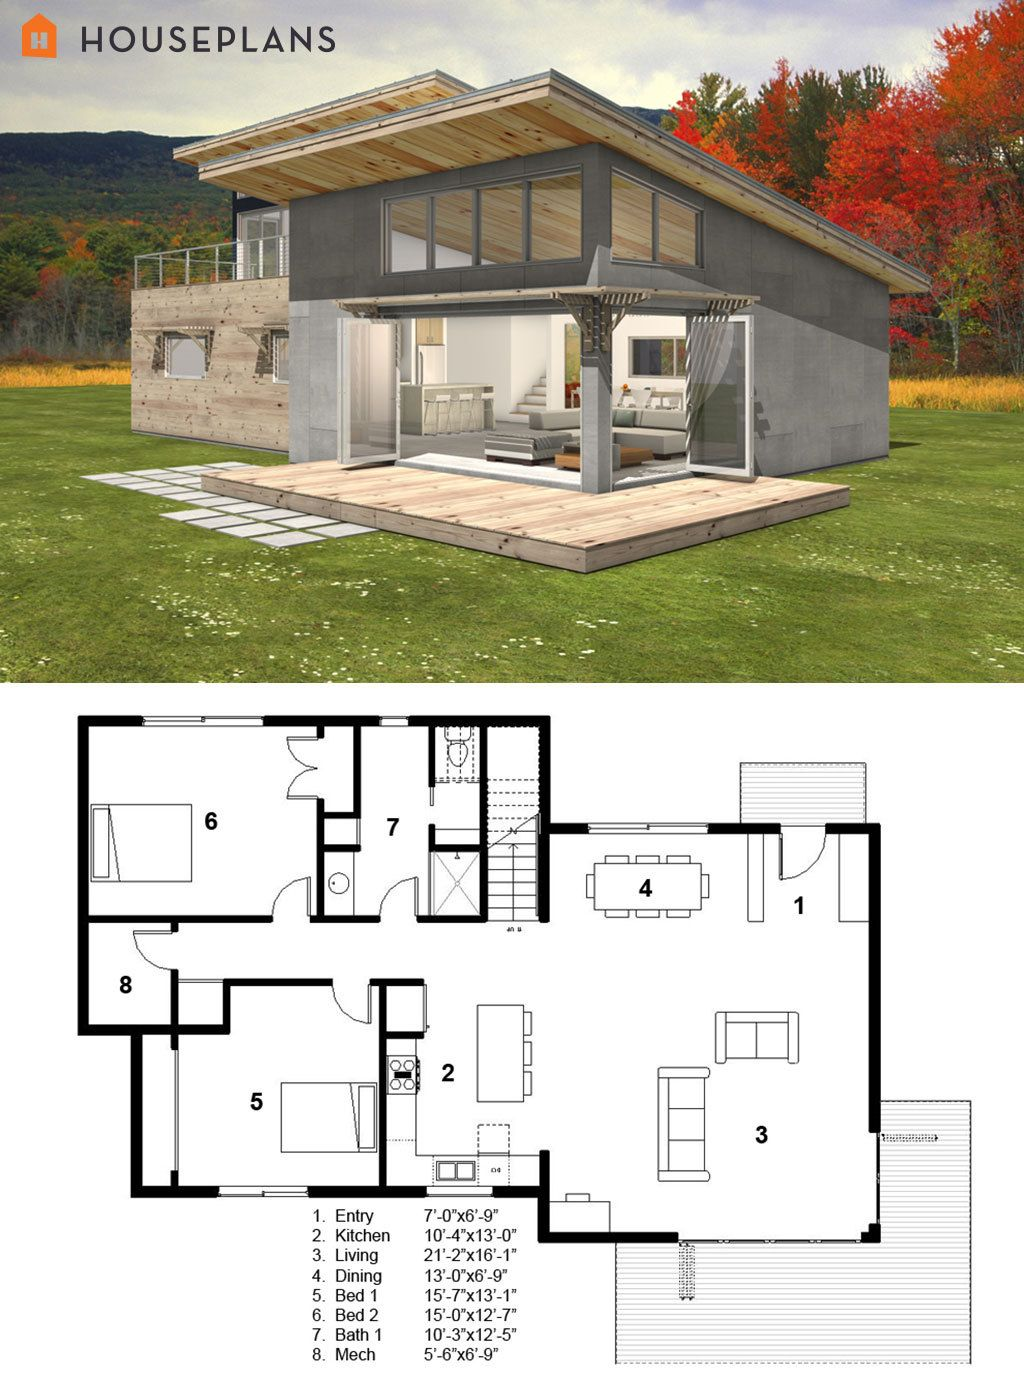 Great Houseplans